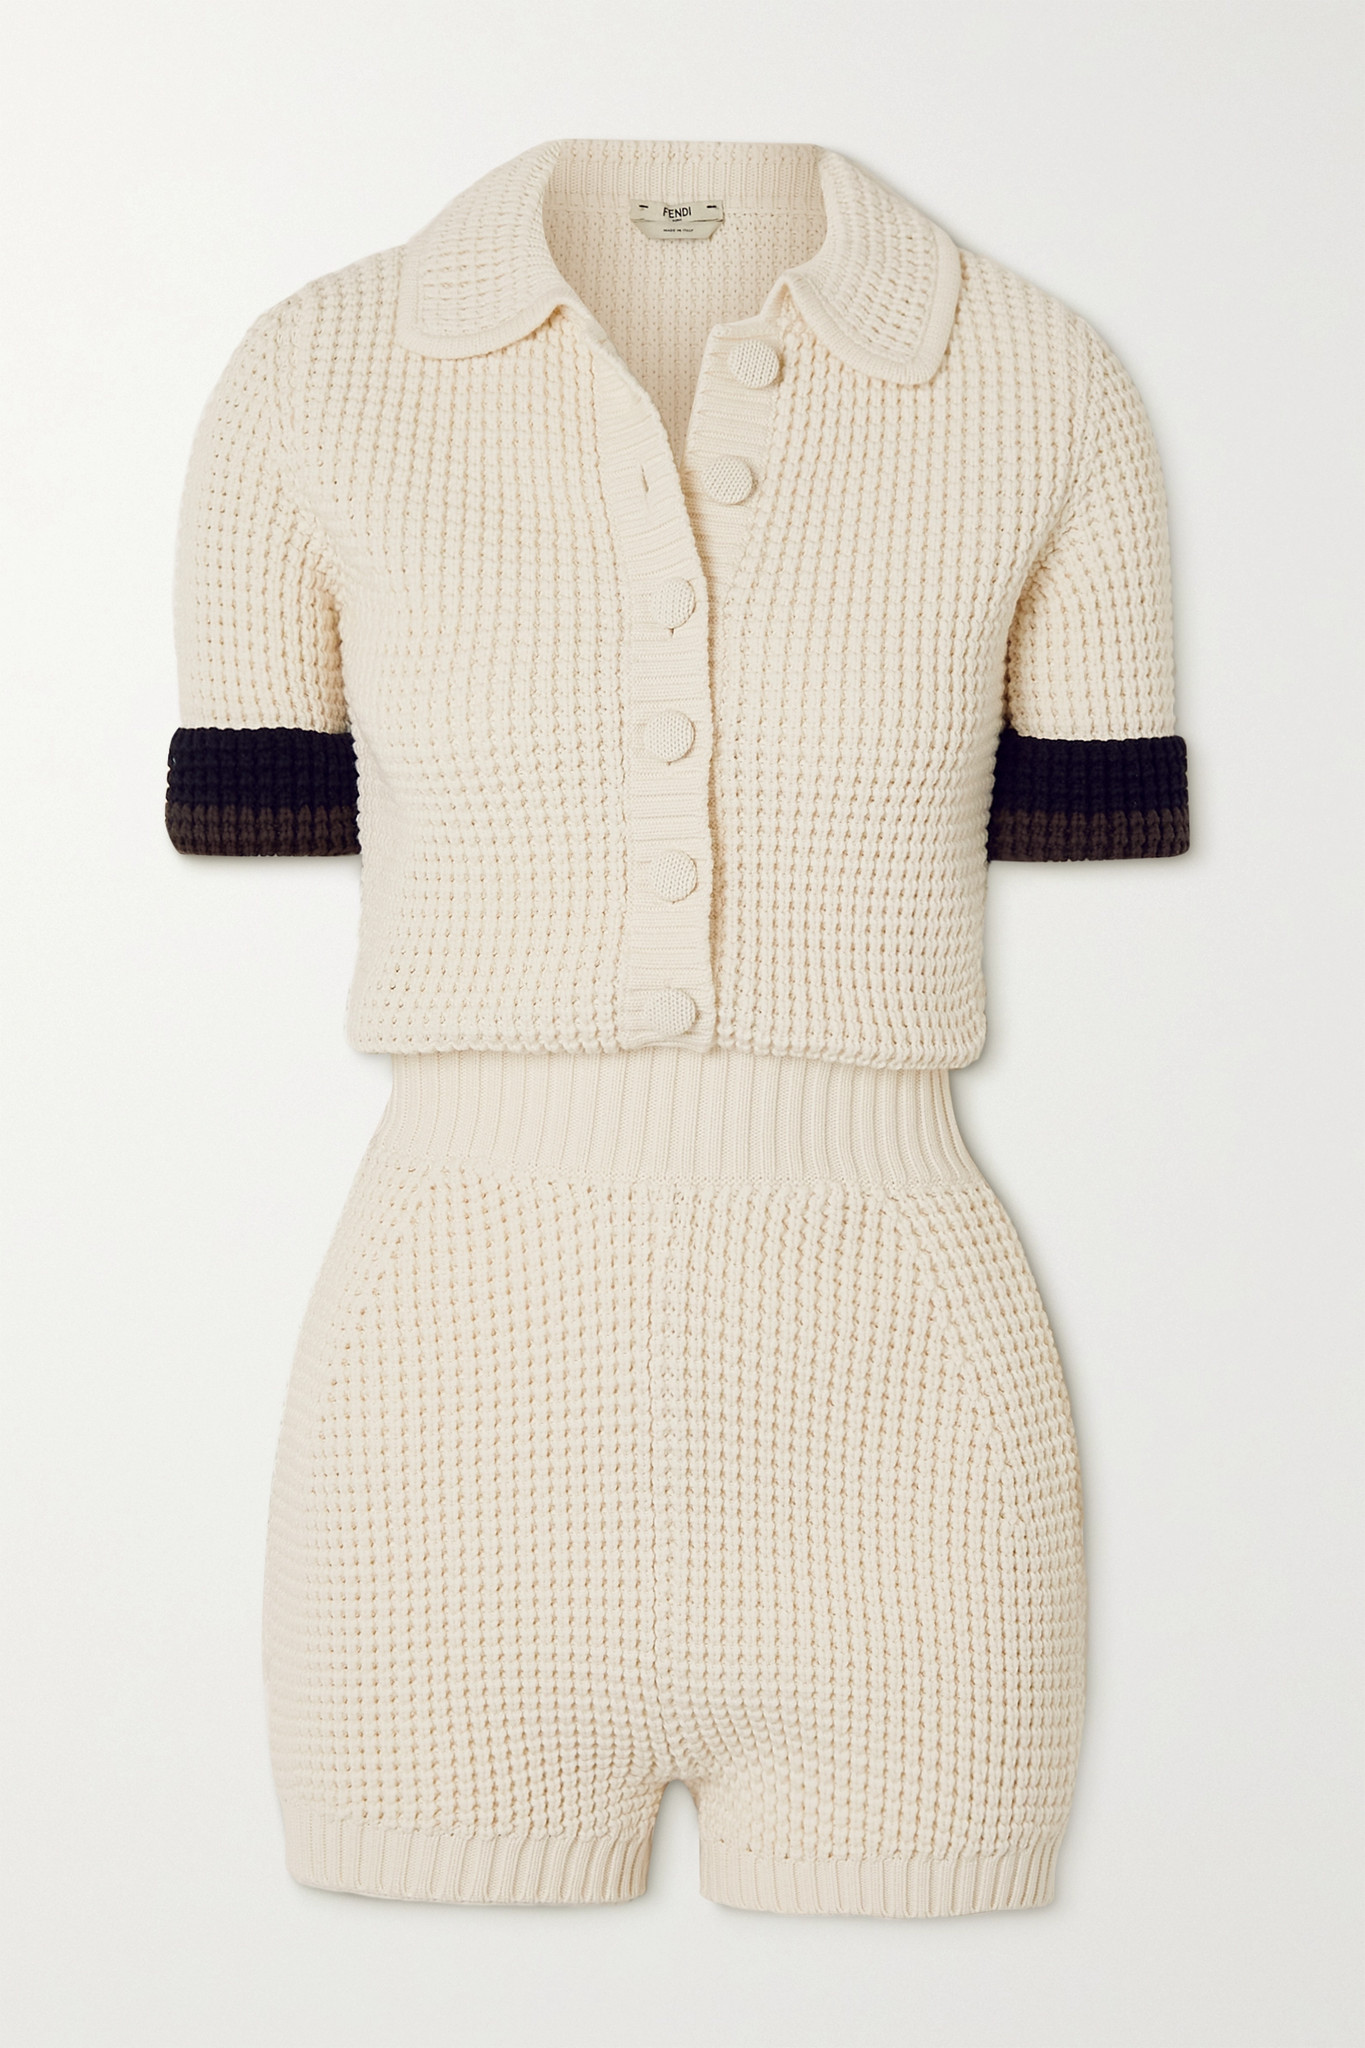 FENDI - Striped Knitted Playsuit - White - IT42